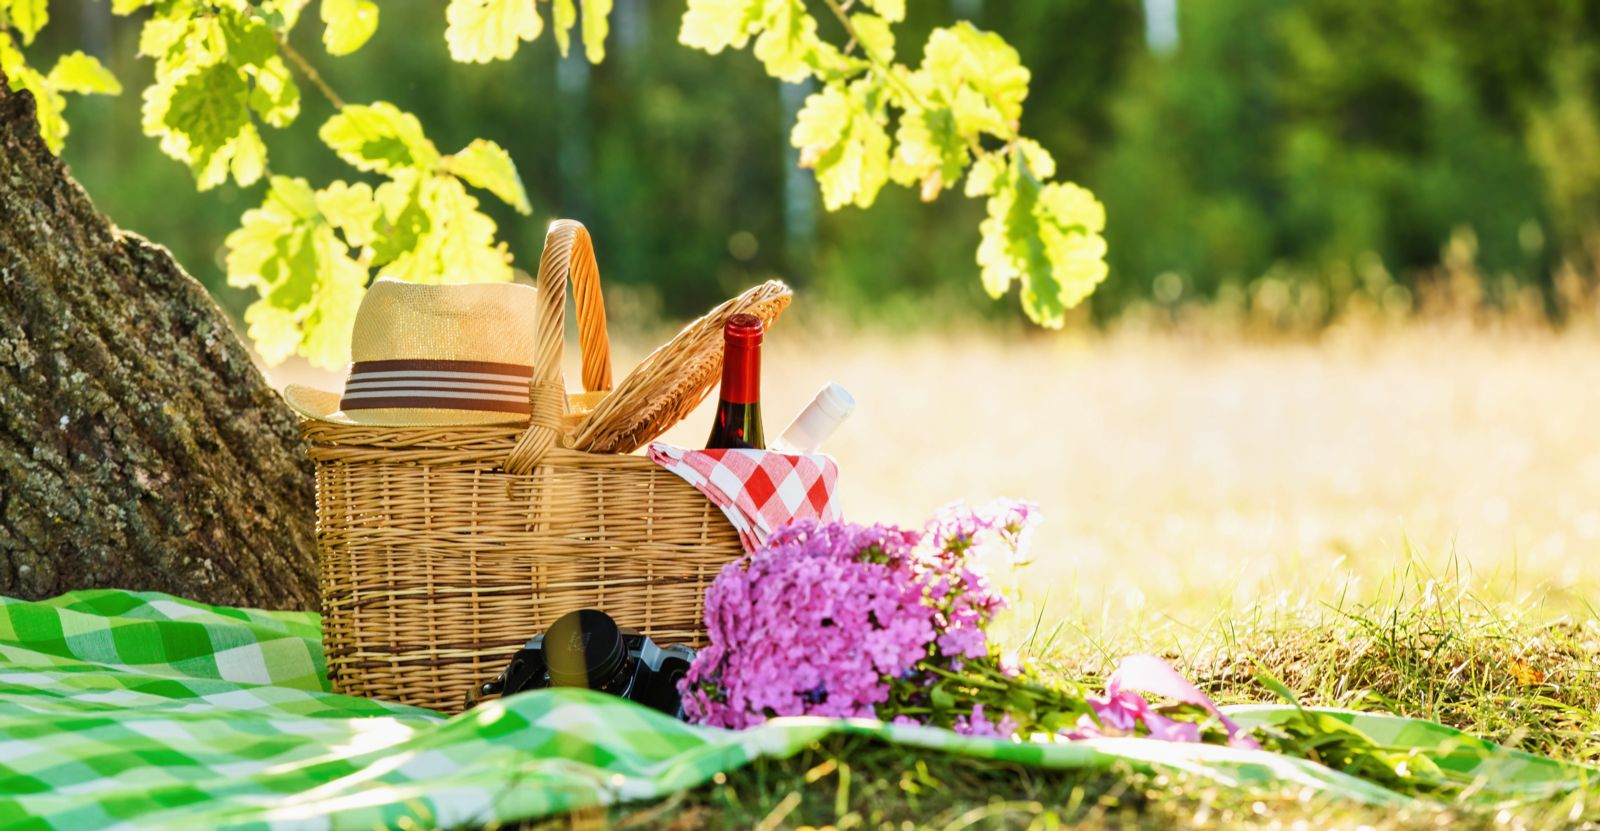 picnic basket next to trees with flowers